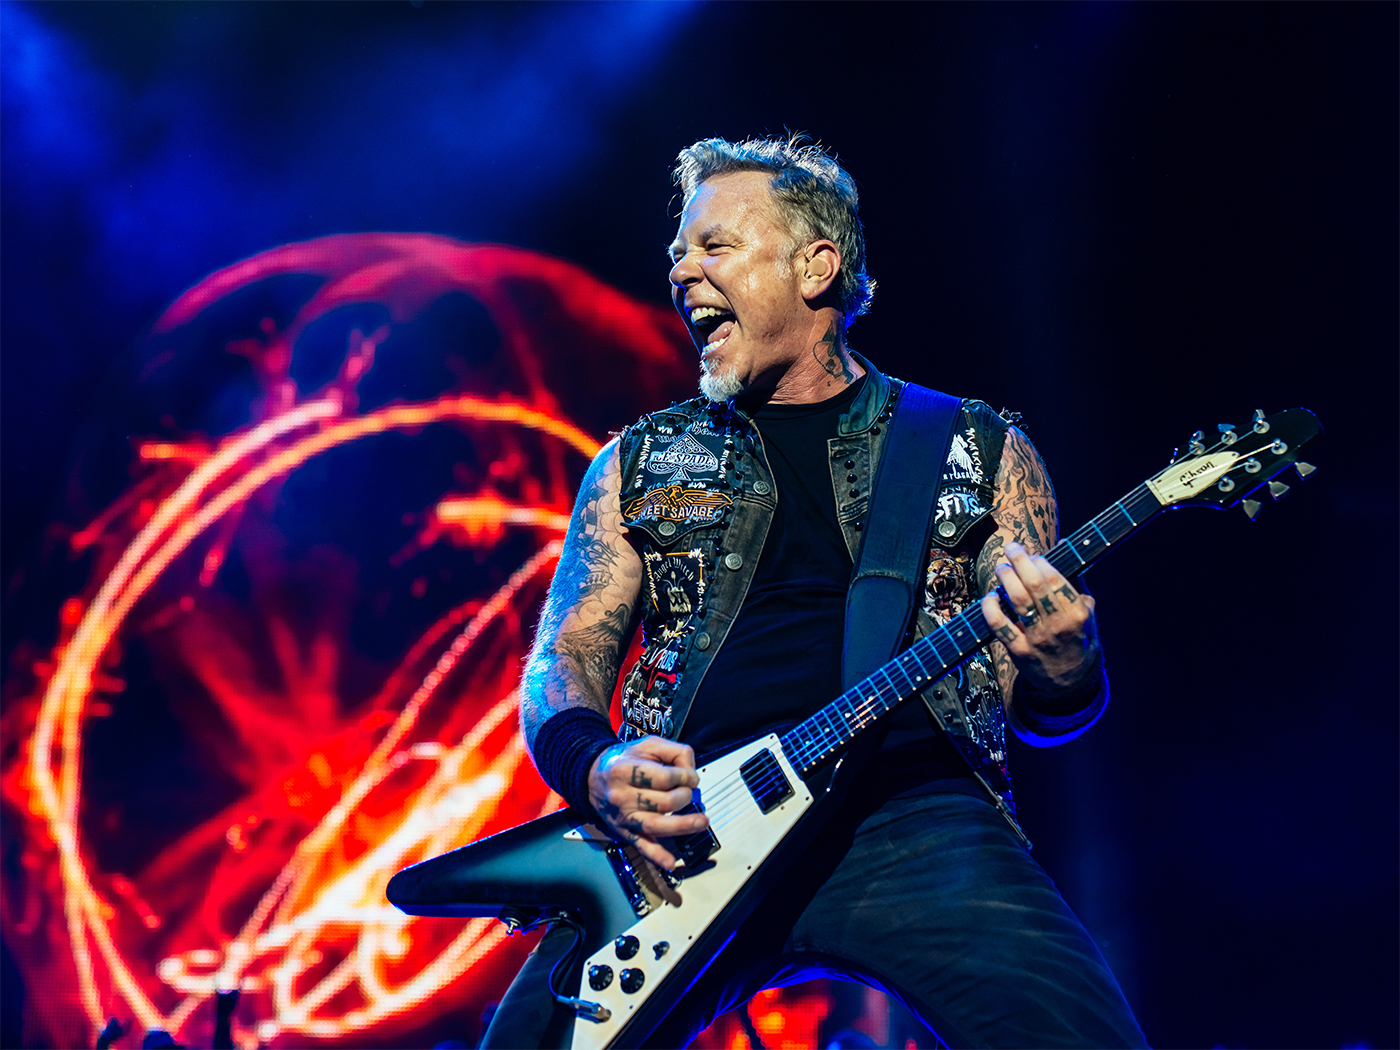 Metallica release official footage of Seek & Destroy at Dreamfest benefit